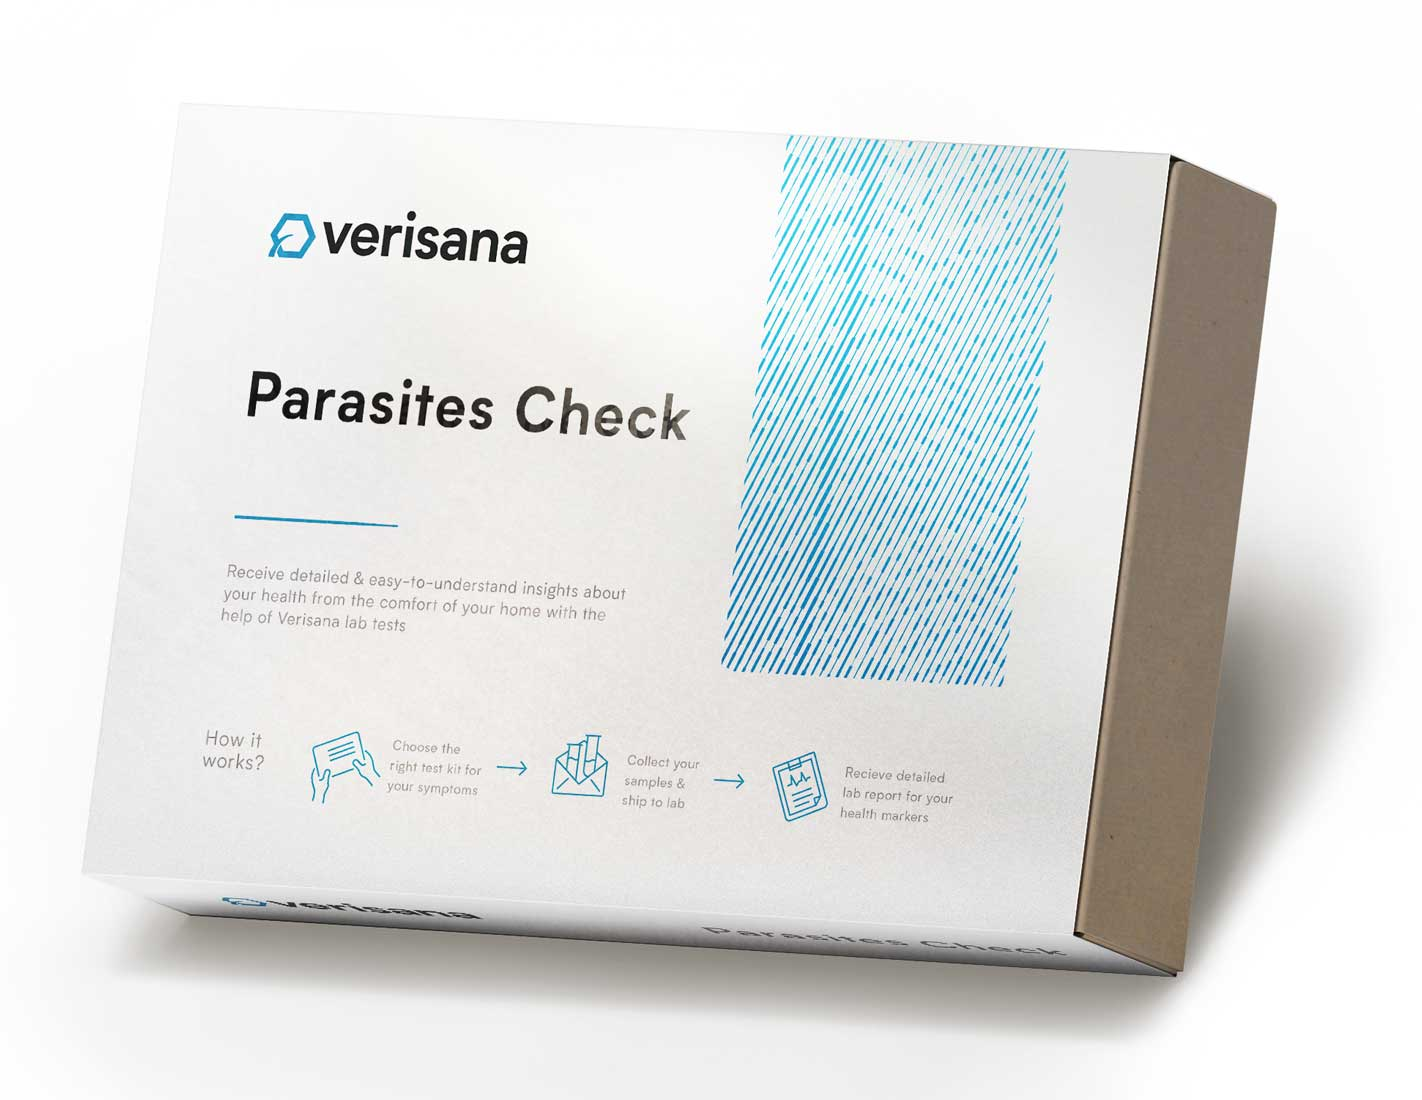 Parasites Check stool test for worm eggs and 4 unicellular parasites